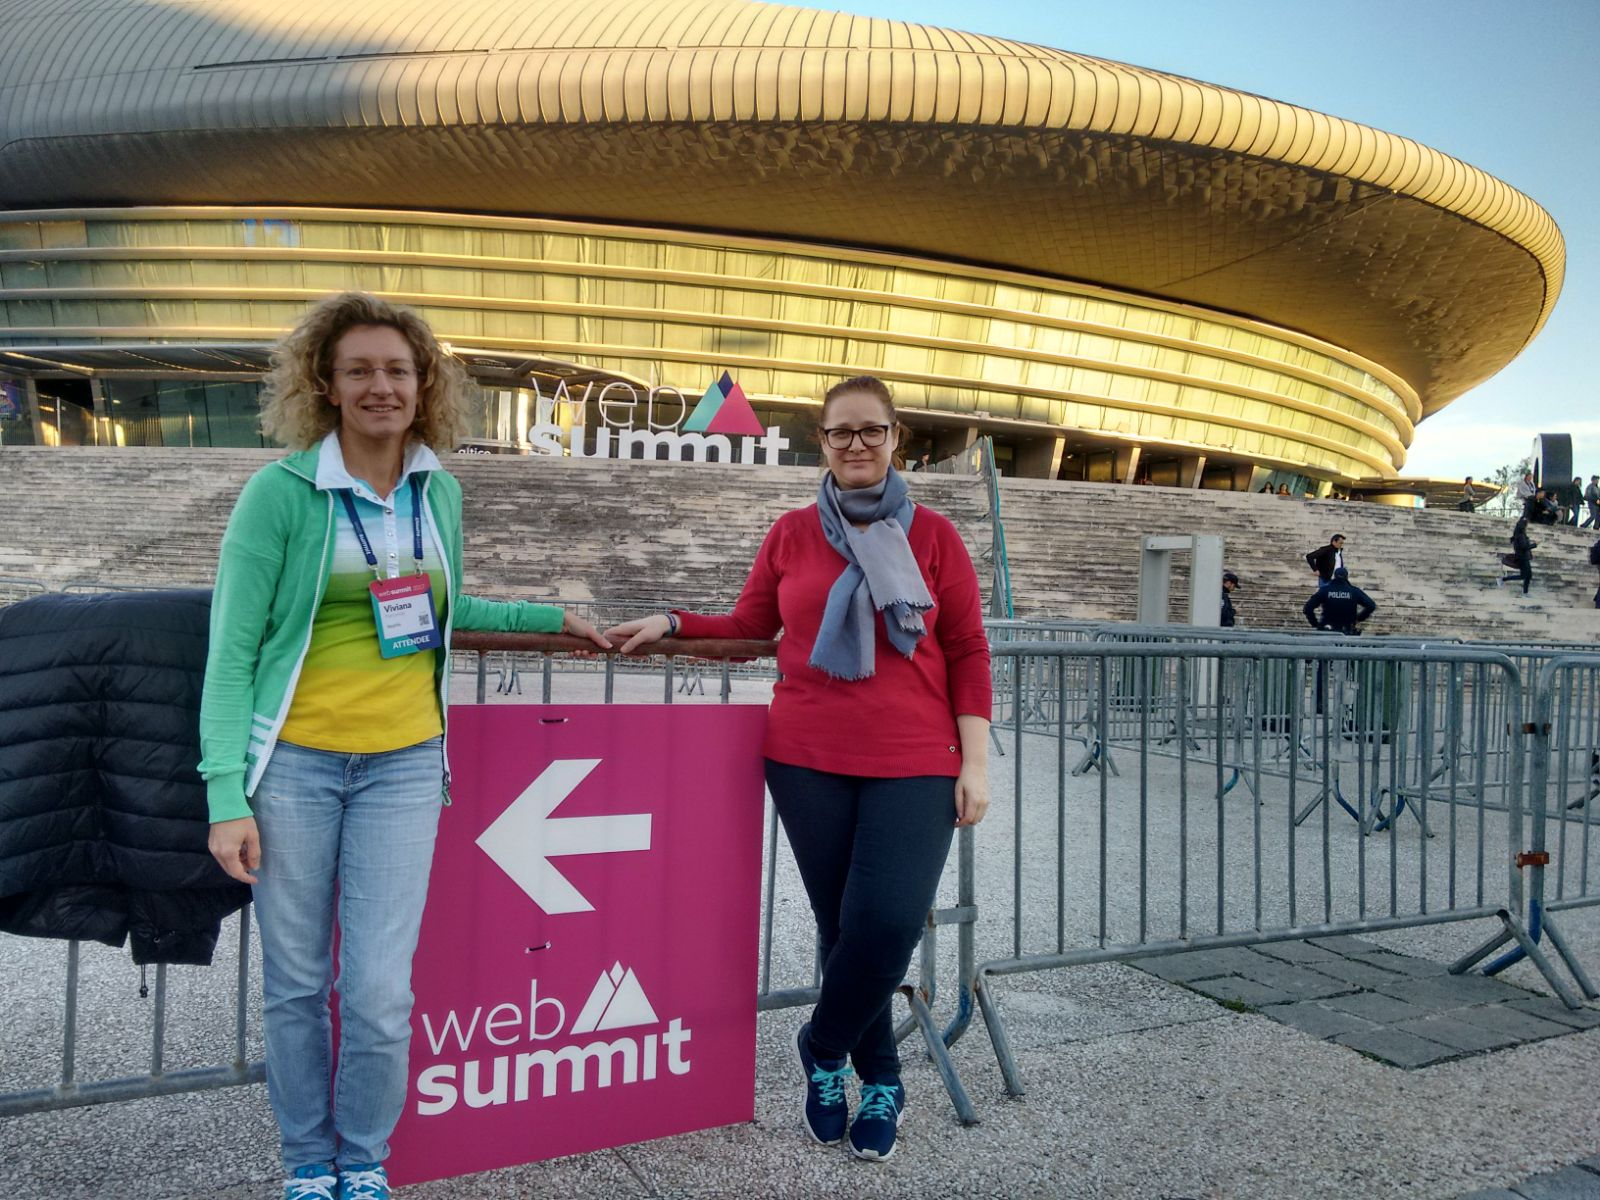 Viviana and Emanuela at Web Summit 2017